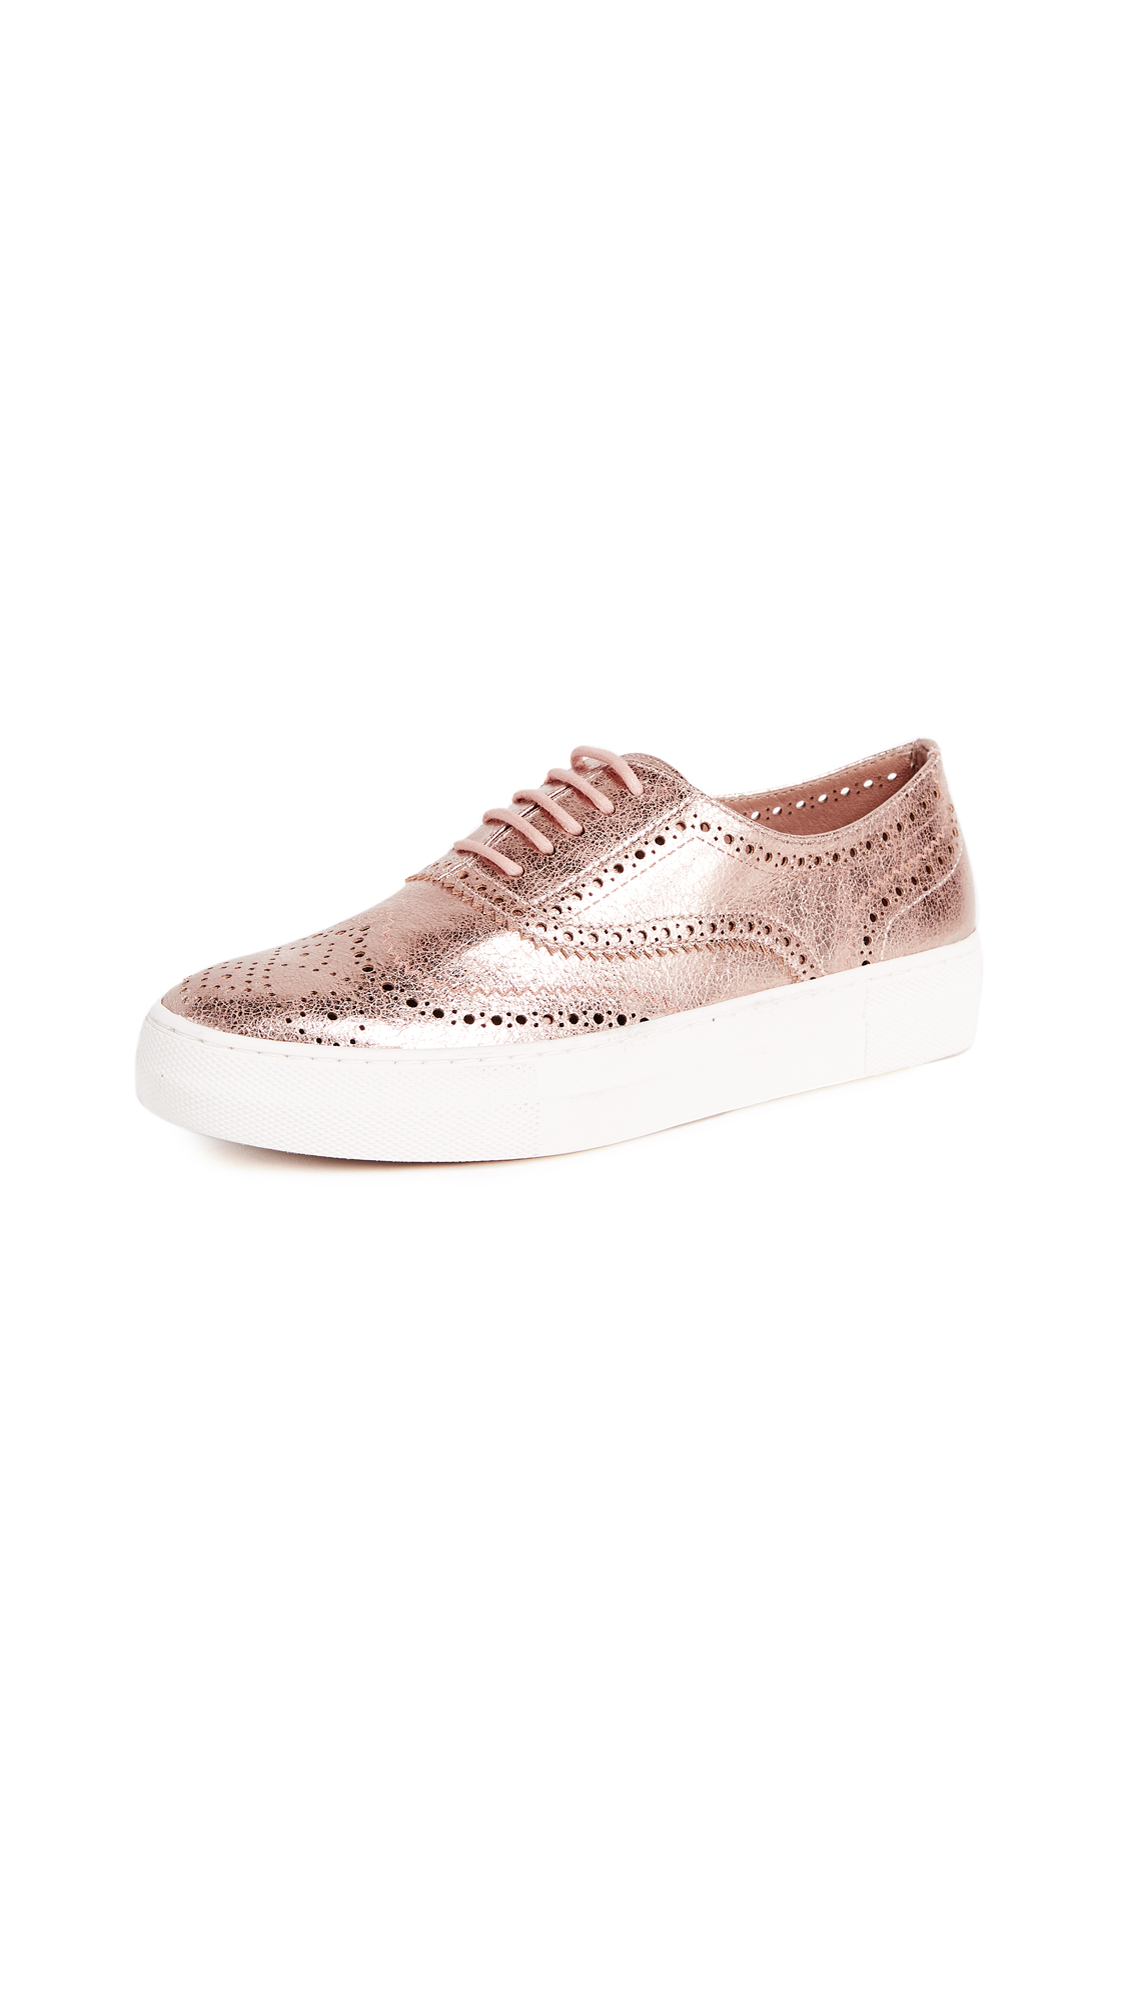 Steven Allister Platform Sneakers - Rose Gold